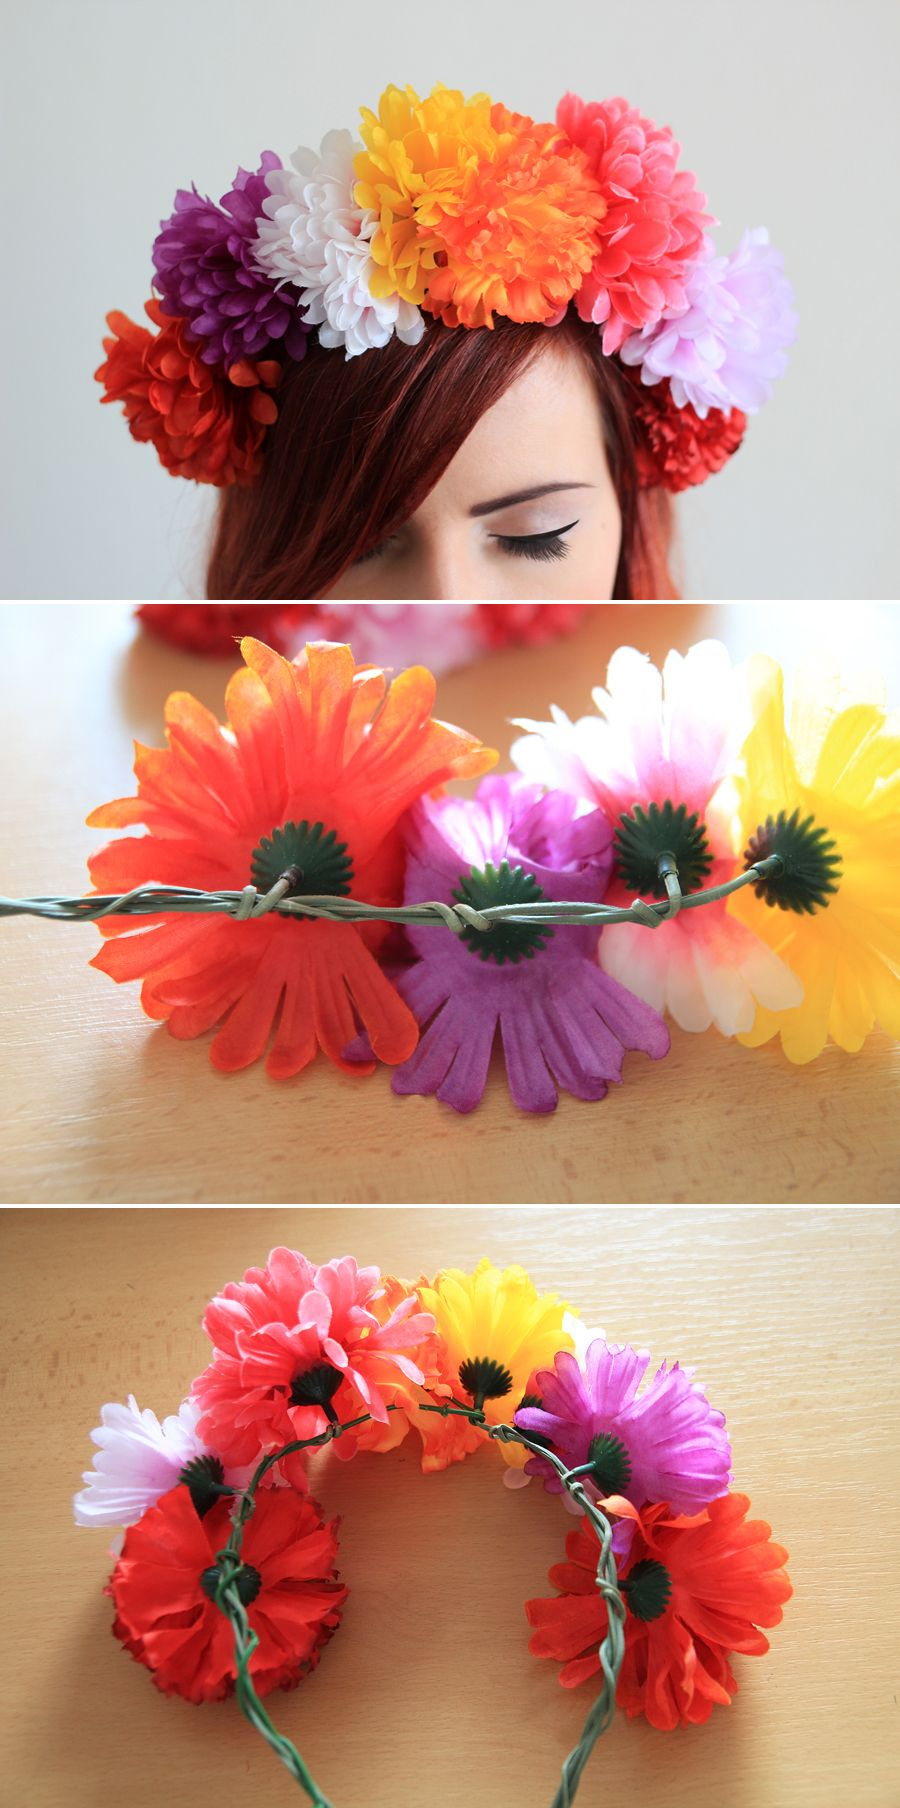 Diy headband fake flower crown halloween pinterest diy diy headband fake flower crown izmirmasajfo Images